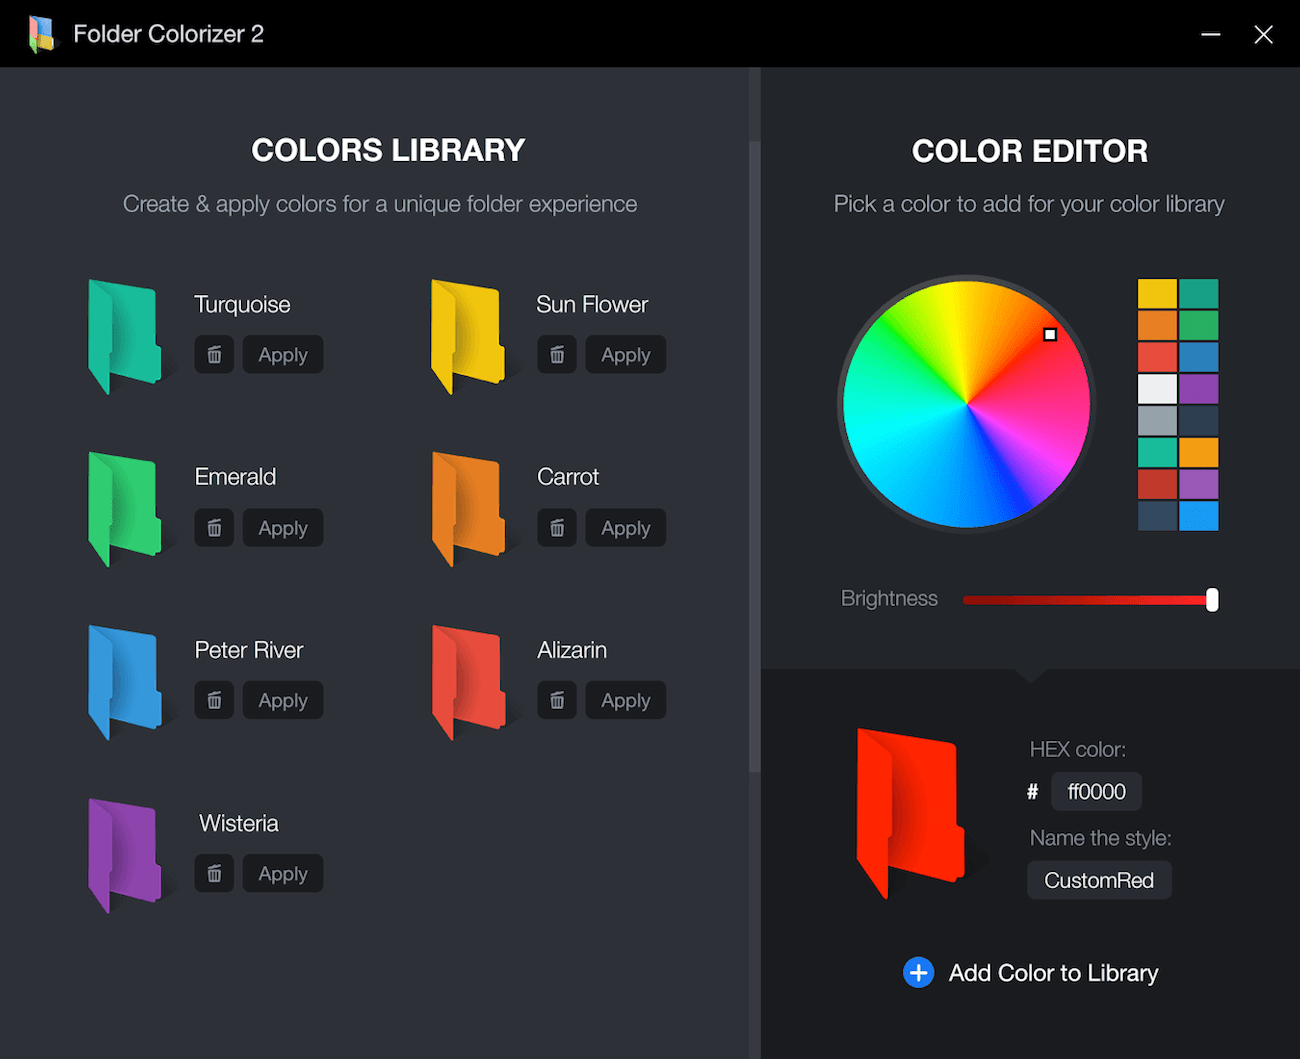 Introducing Folder Colorizer 2 for PC computers